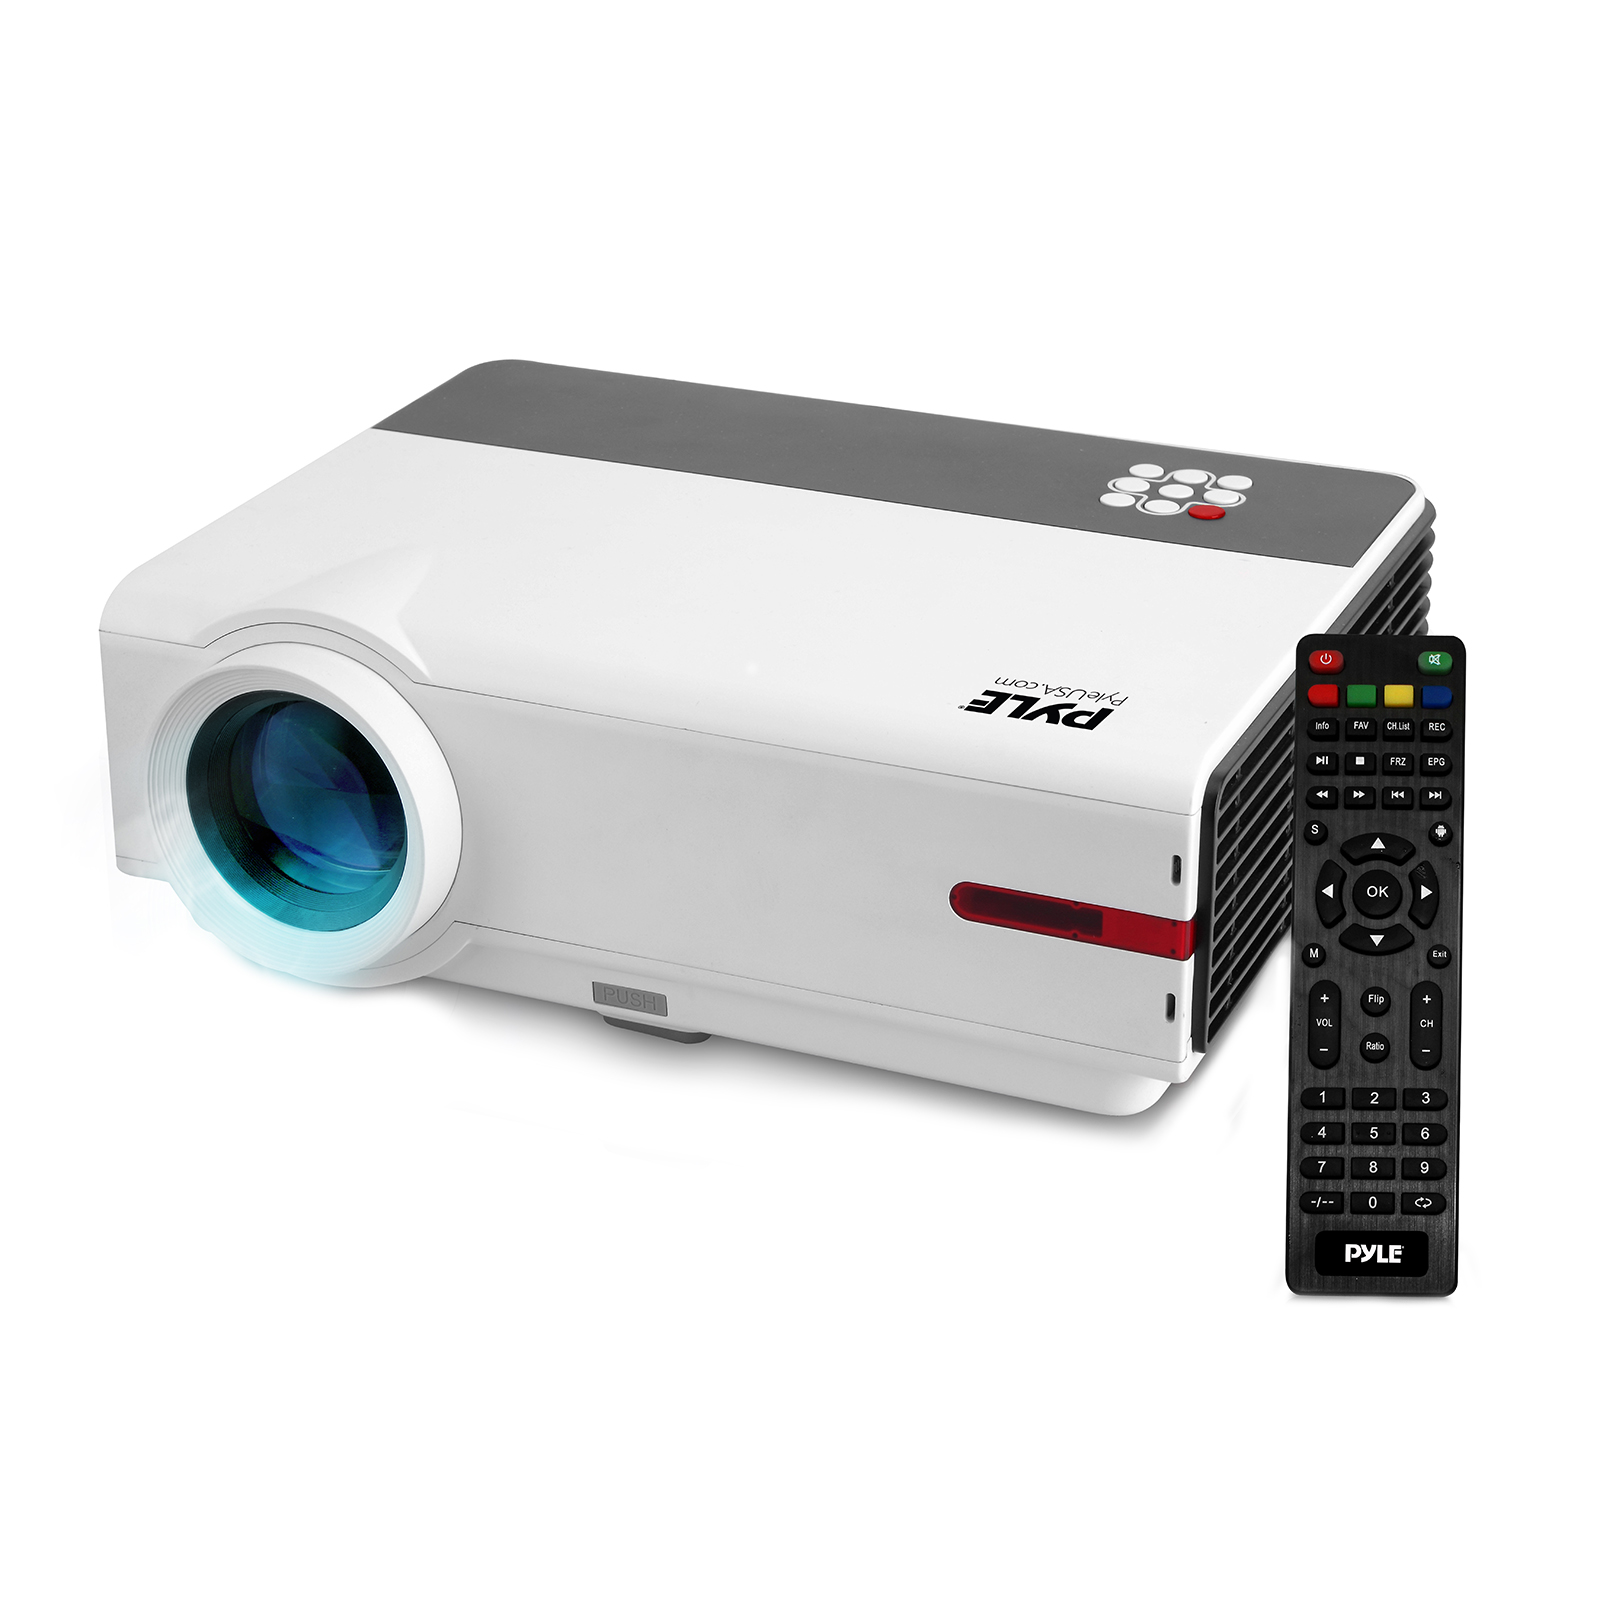 """Android HD Home Theater Smart Projector, Wi-Fi Web Browsing, App Download, Up to 160"""" Display, 1080p Support (Mac & PC Compatible)"""